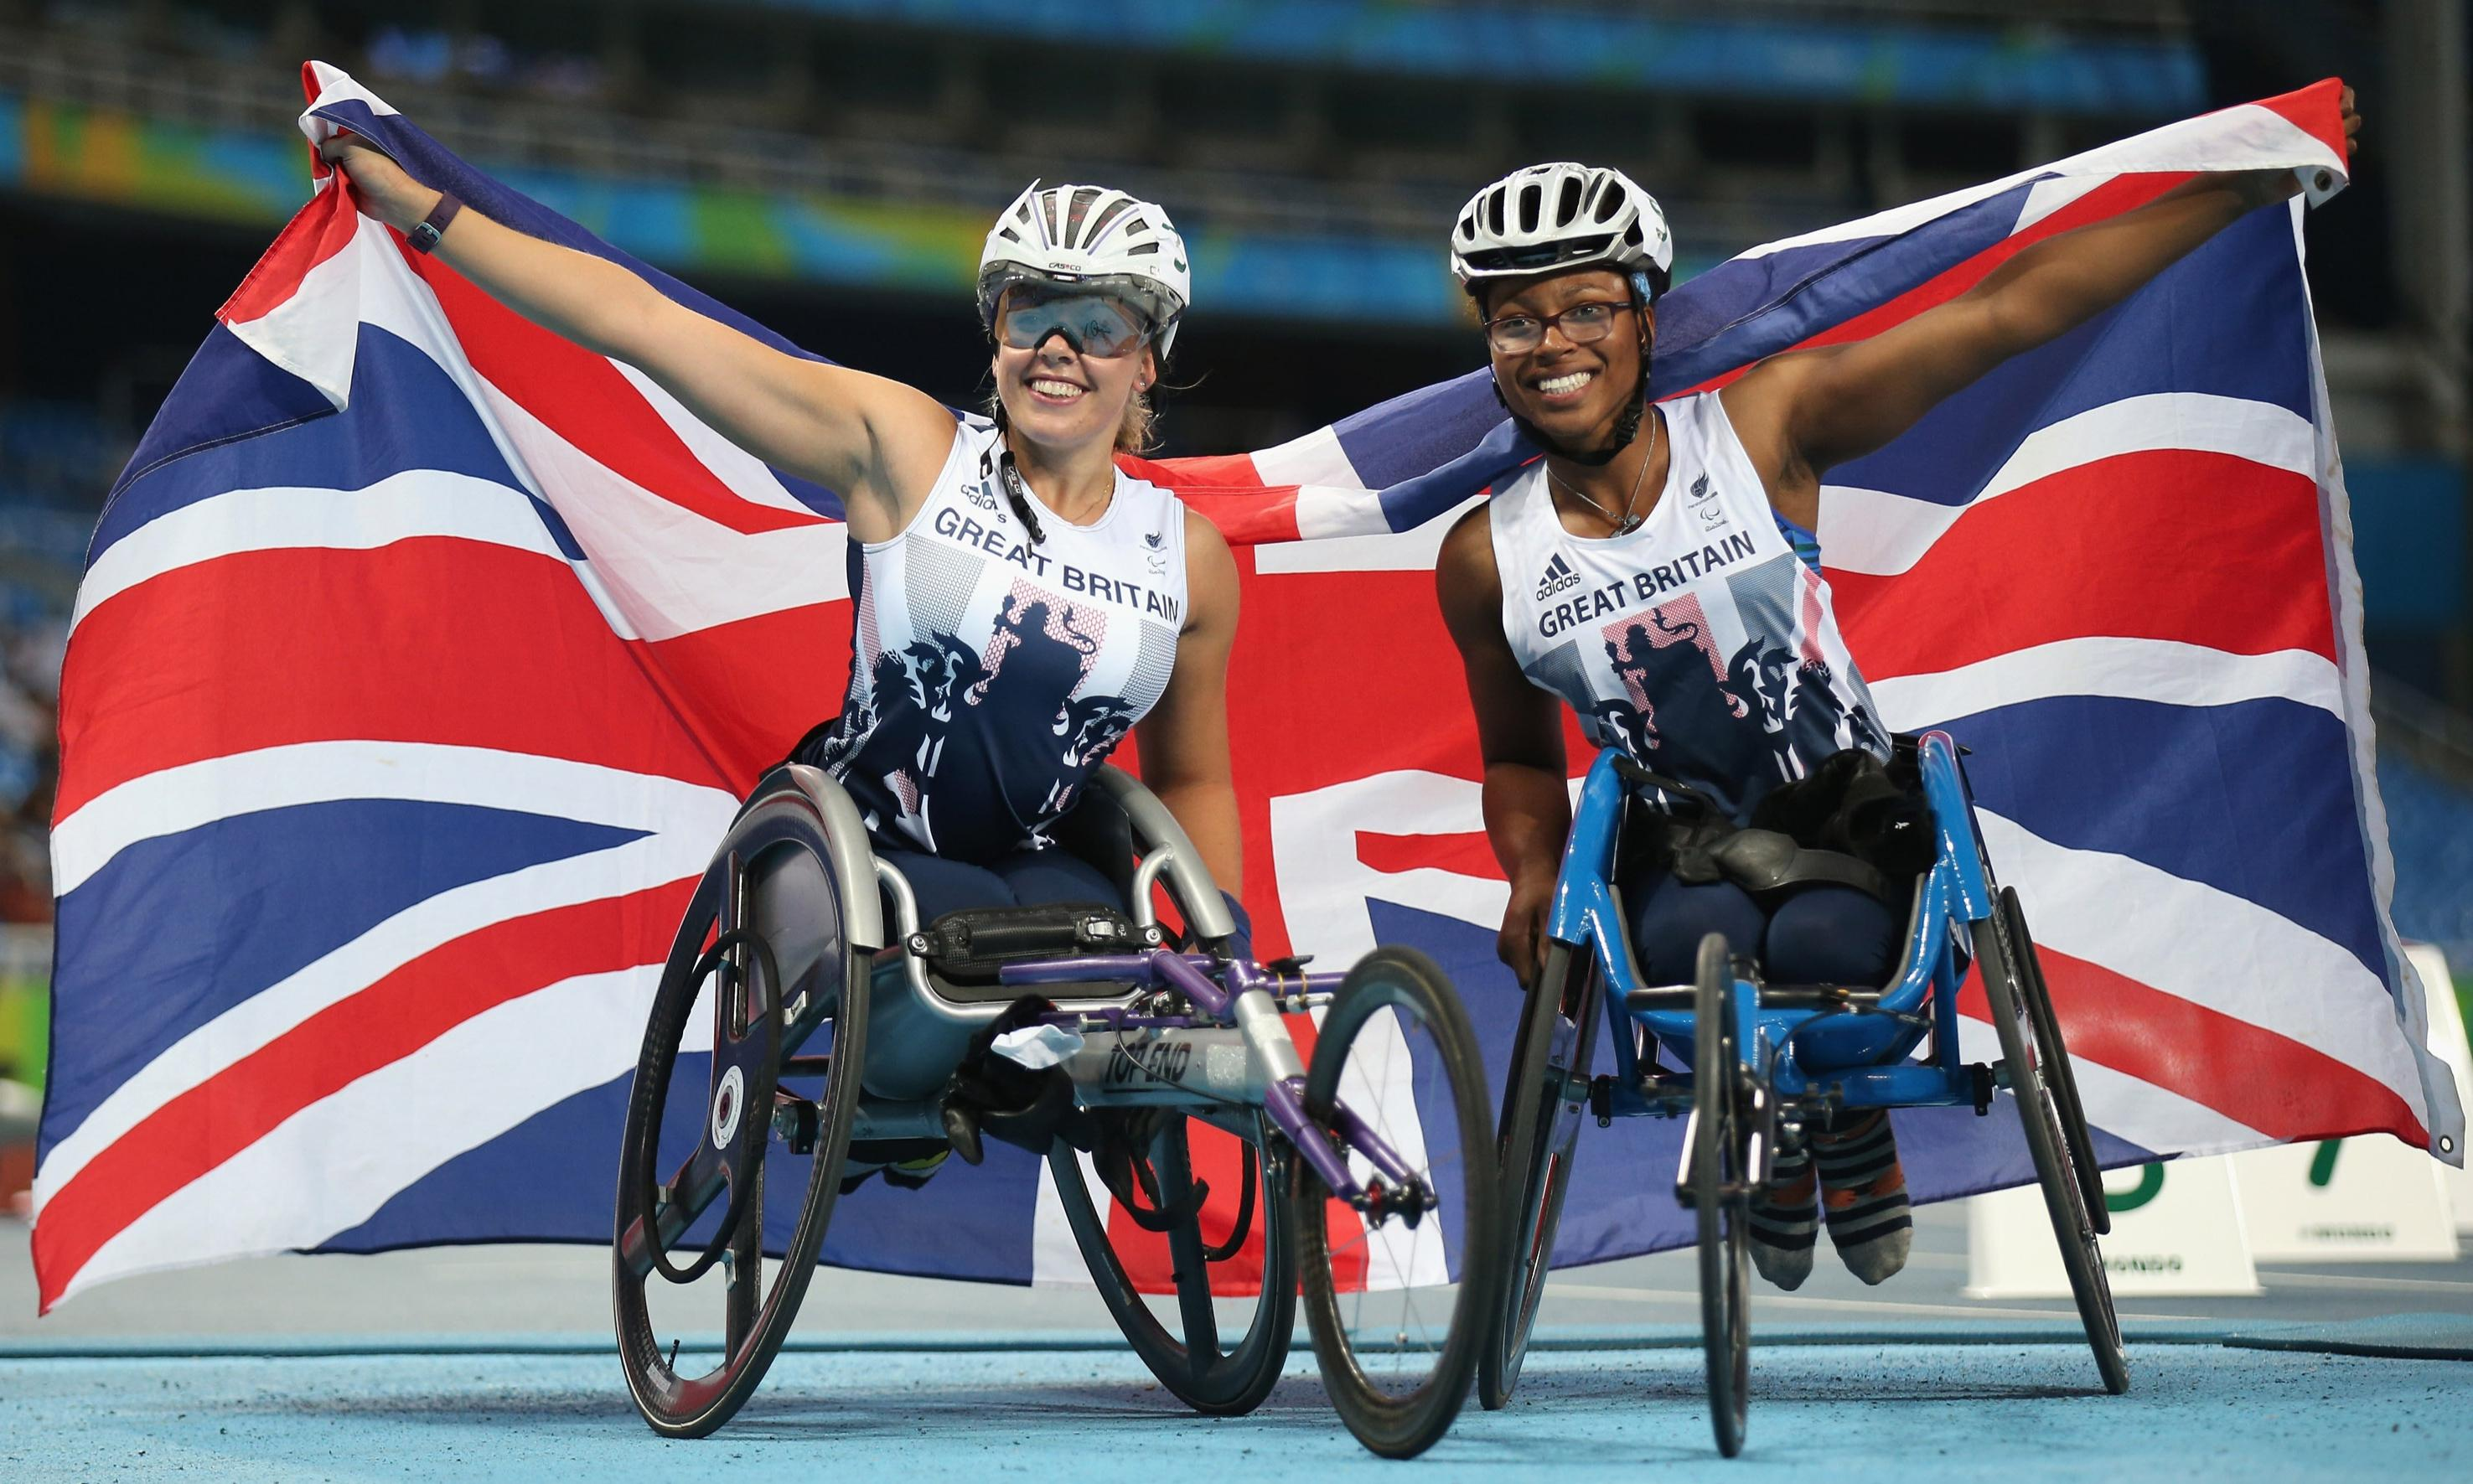 Paralympics GB stunned after Yokohama hotels demand payment for accessibility